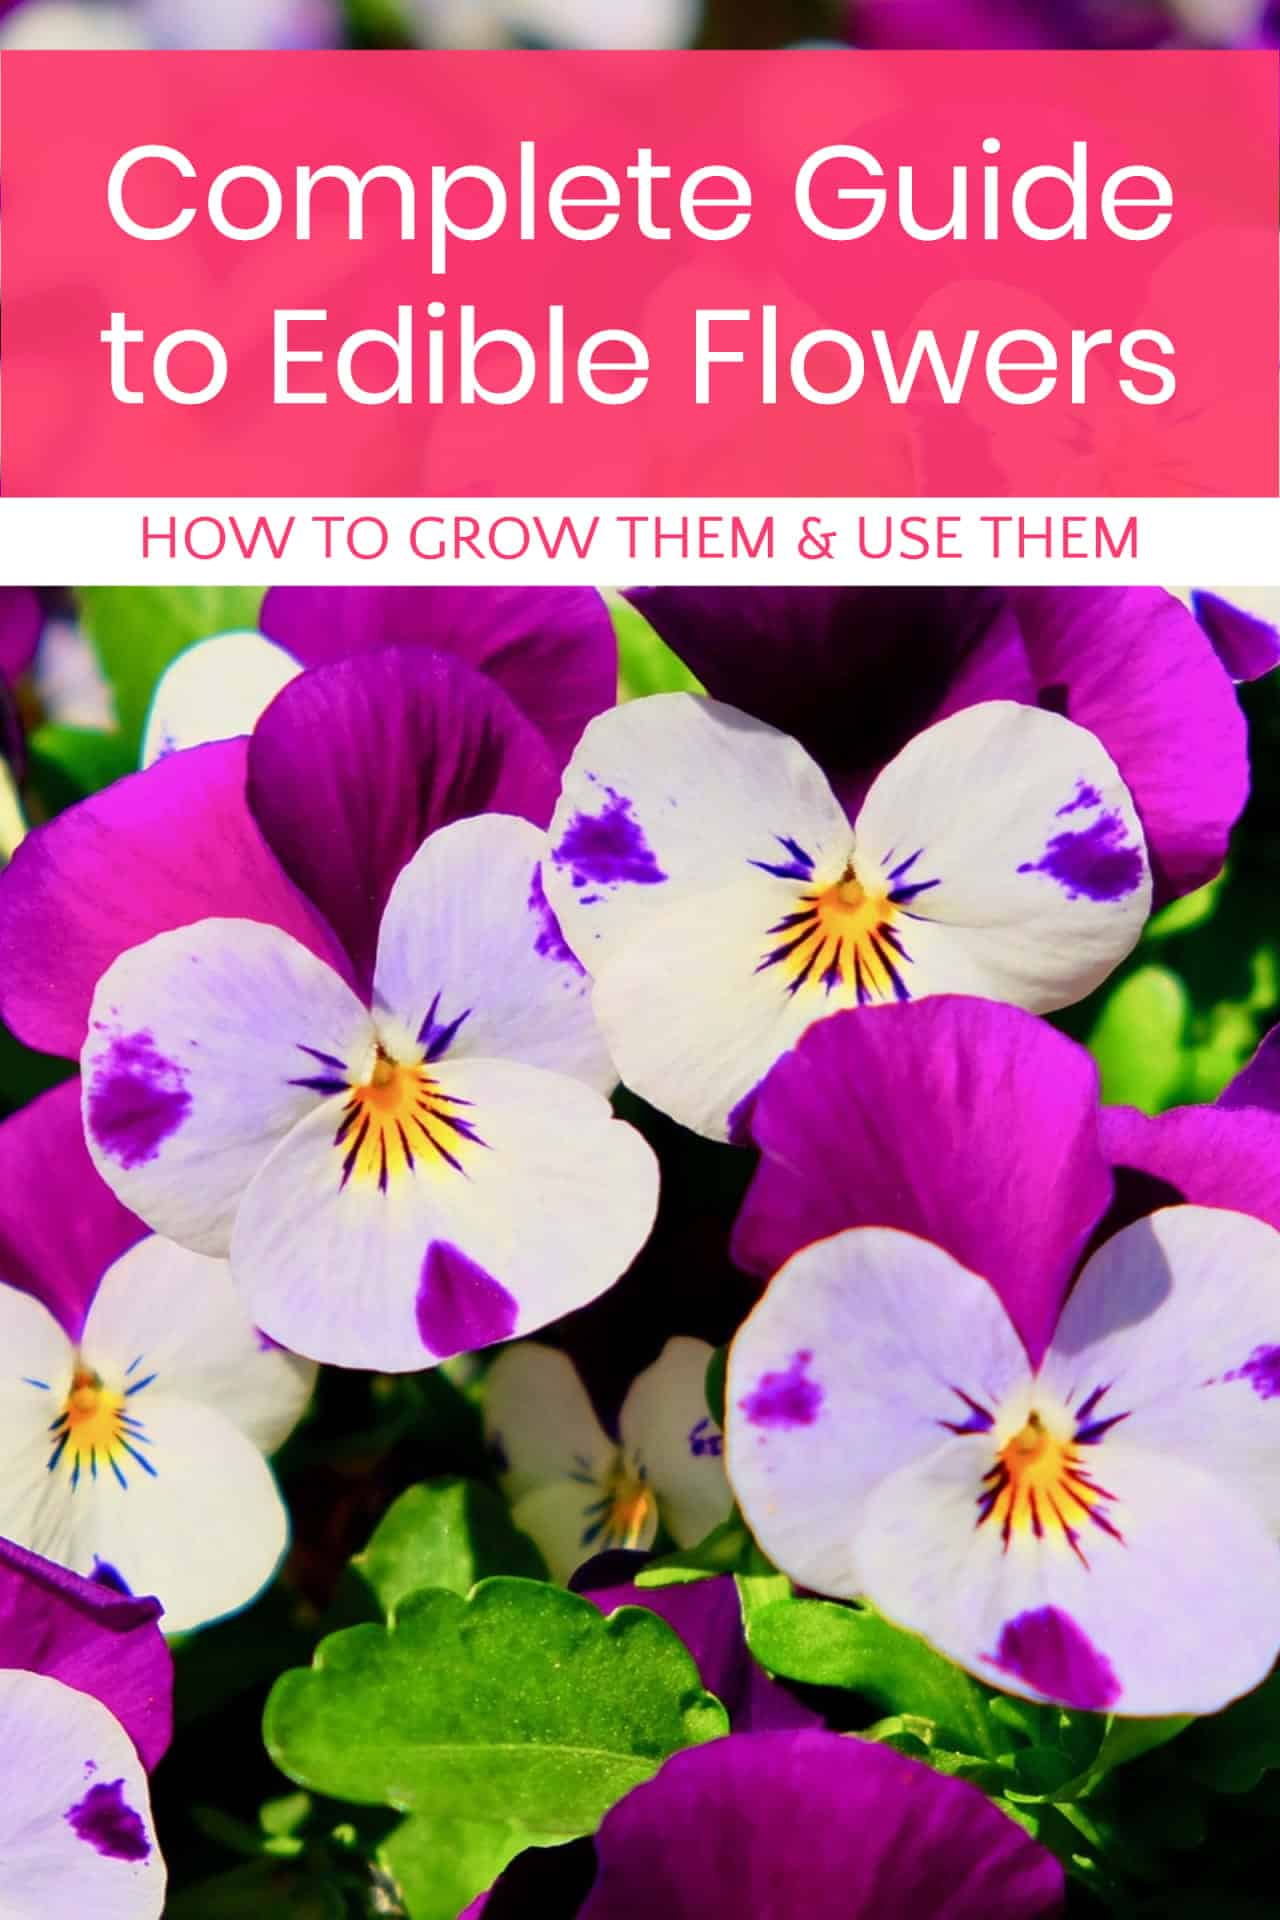 Working on planning your spring garden? Make sure you include some delicious edible flowers! Read on for a complete guide to everything you could ever possibly want to know about growing and using flowers that are as tasty as they are beautiful!